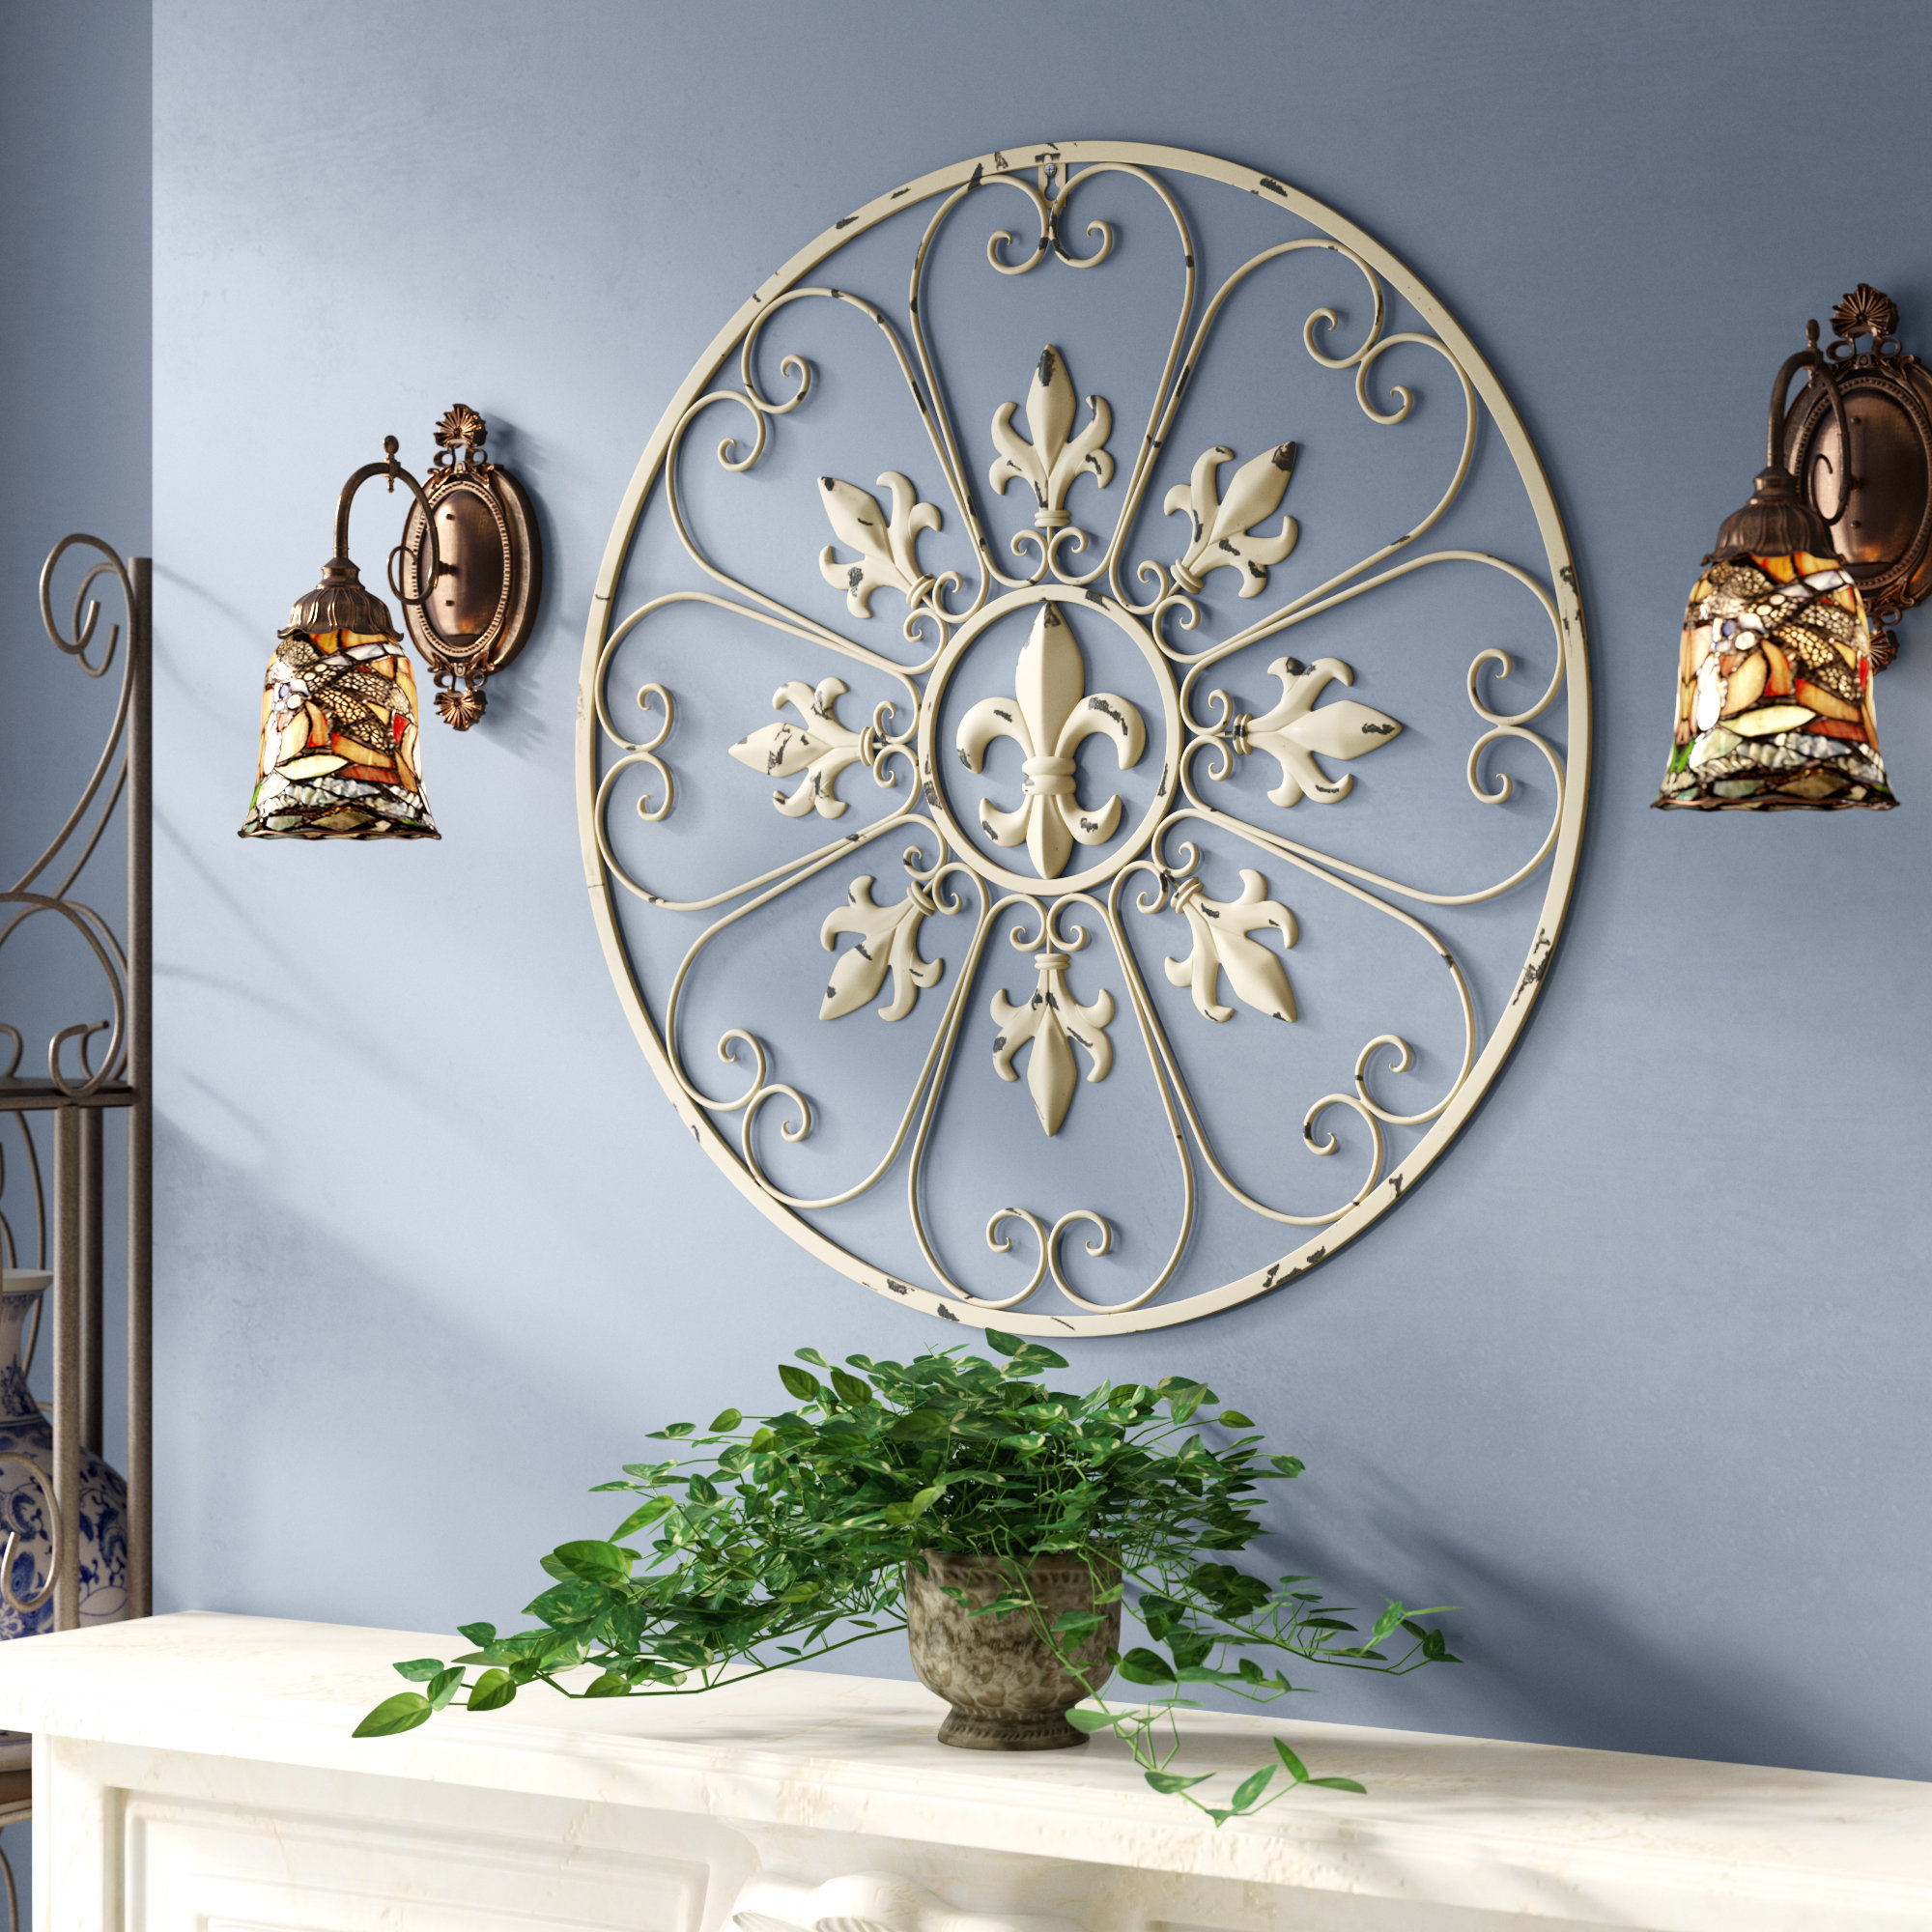 Multi Circle Wall Decor | Wayfair with Belle Circular Scroll Wall Decor (Image 26 of 30)